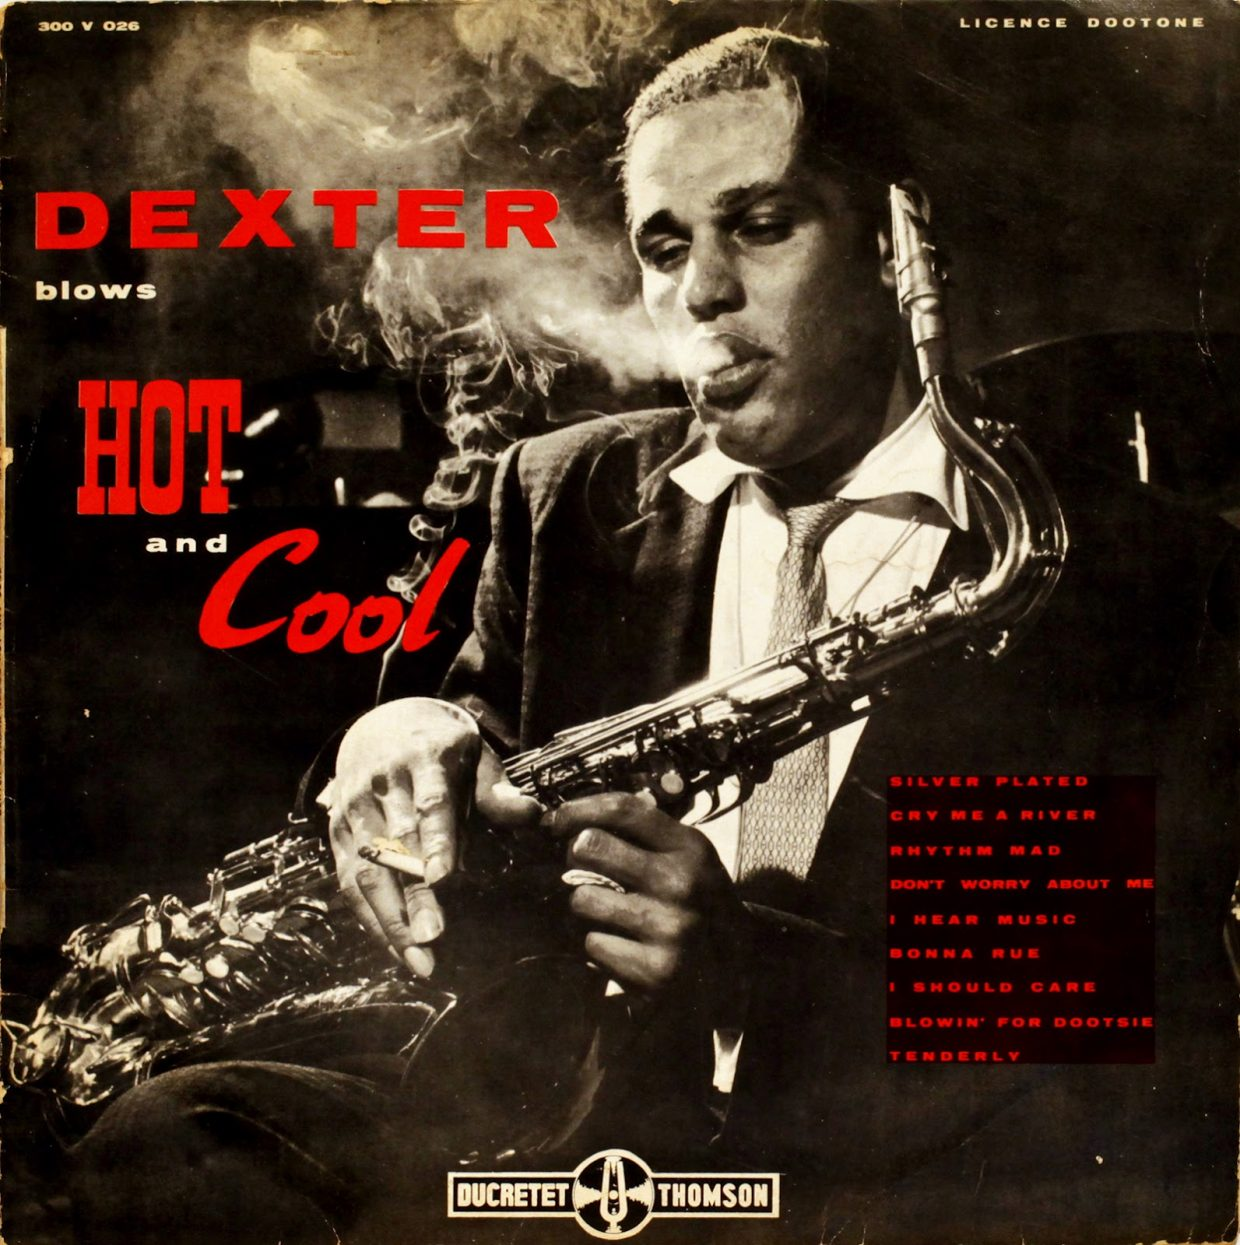 dexter gordon - dexter blows hot and cool